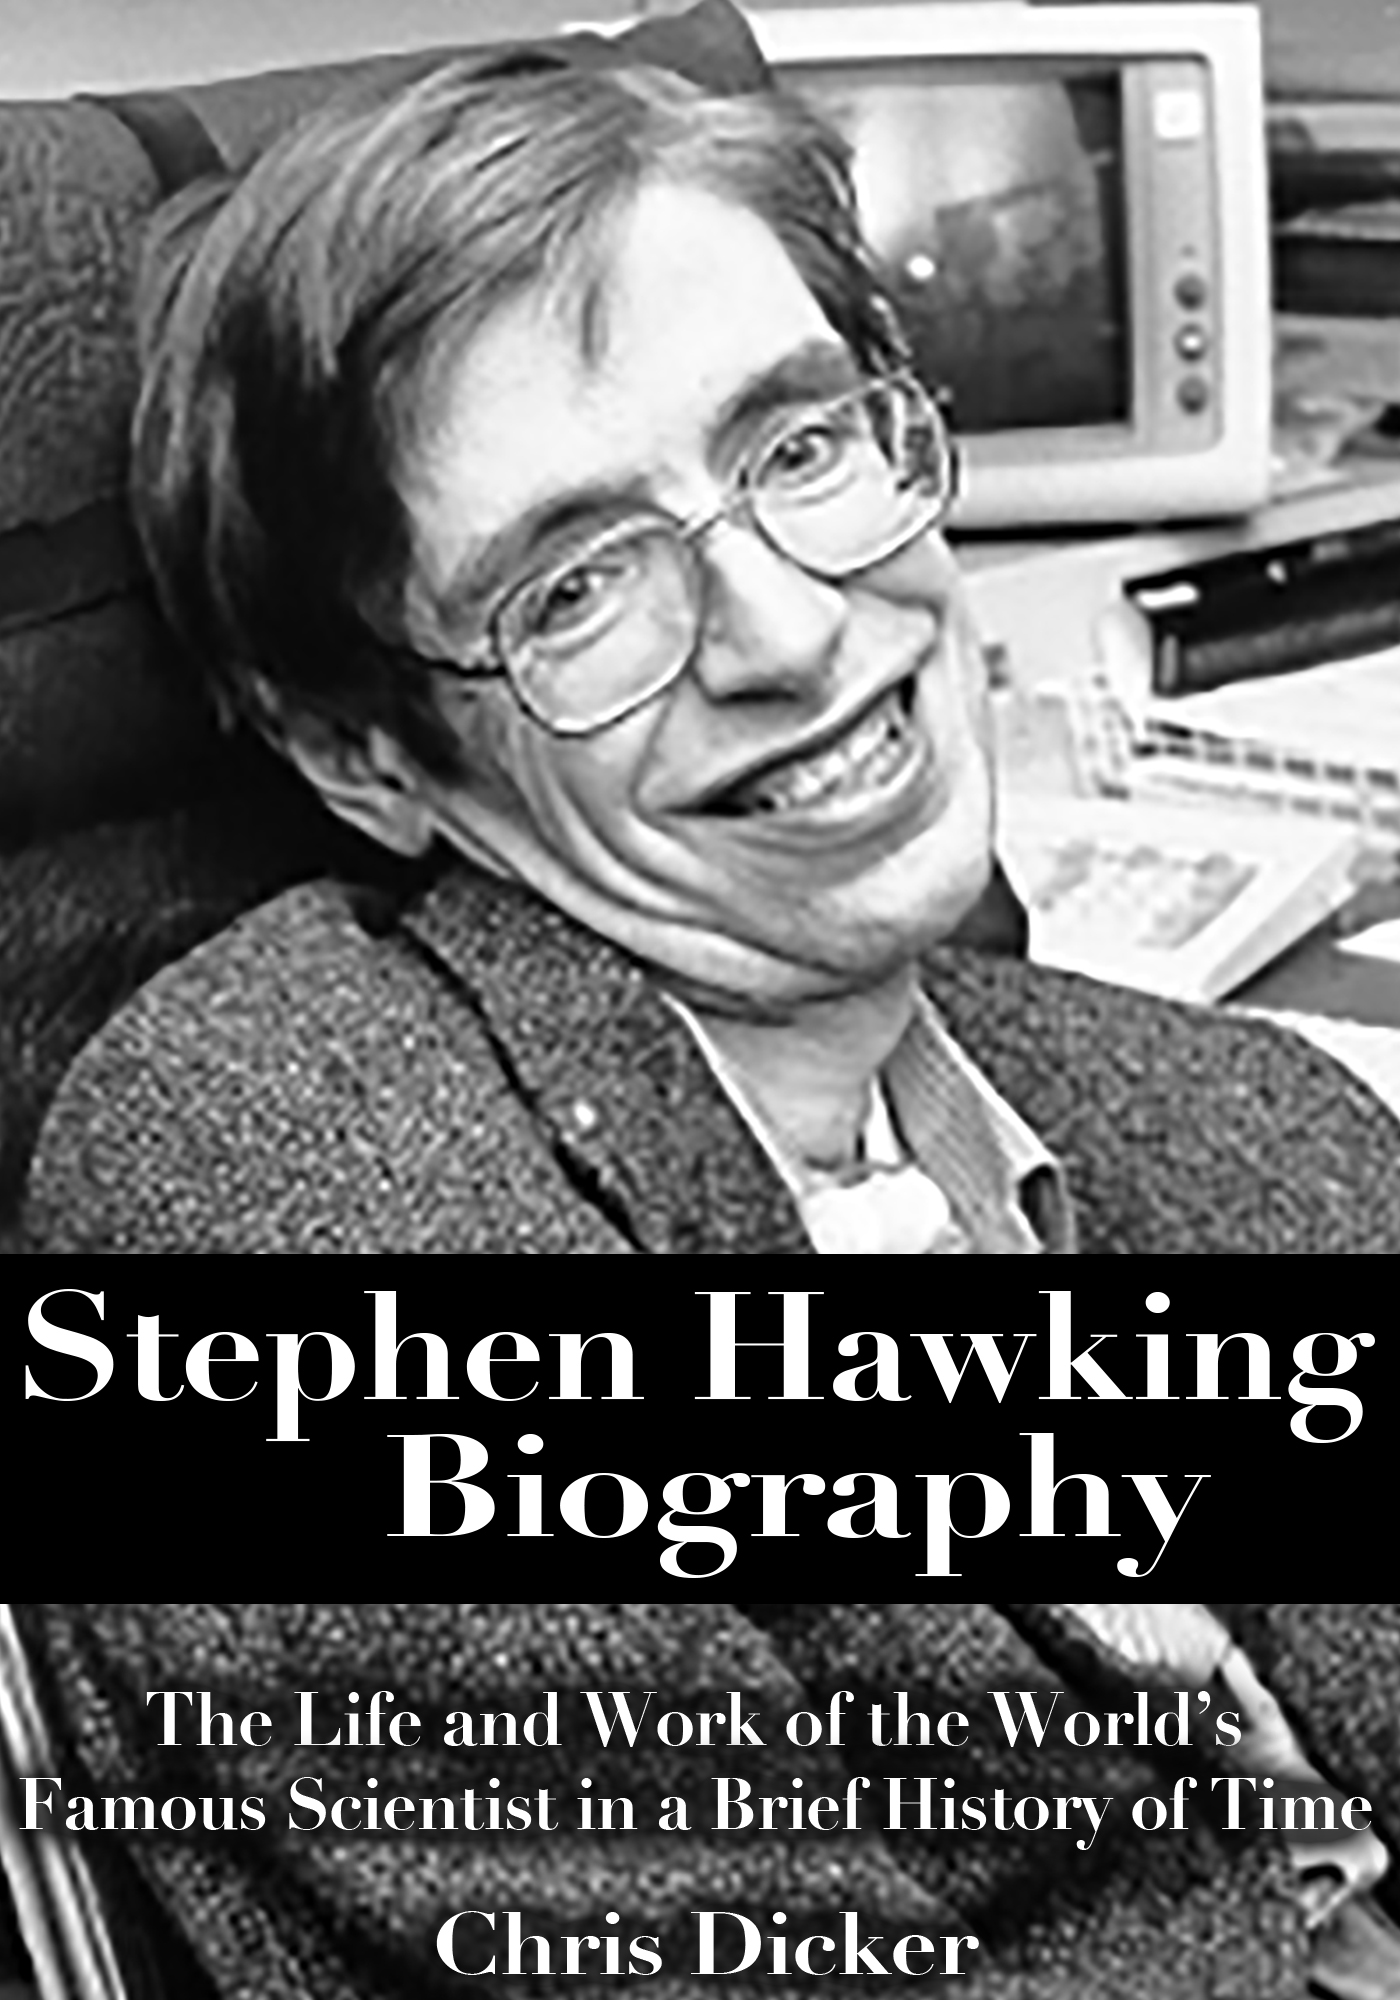 a biography and life work of stephen hawking a theoretical physicist